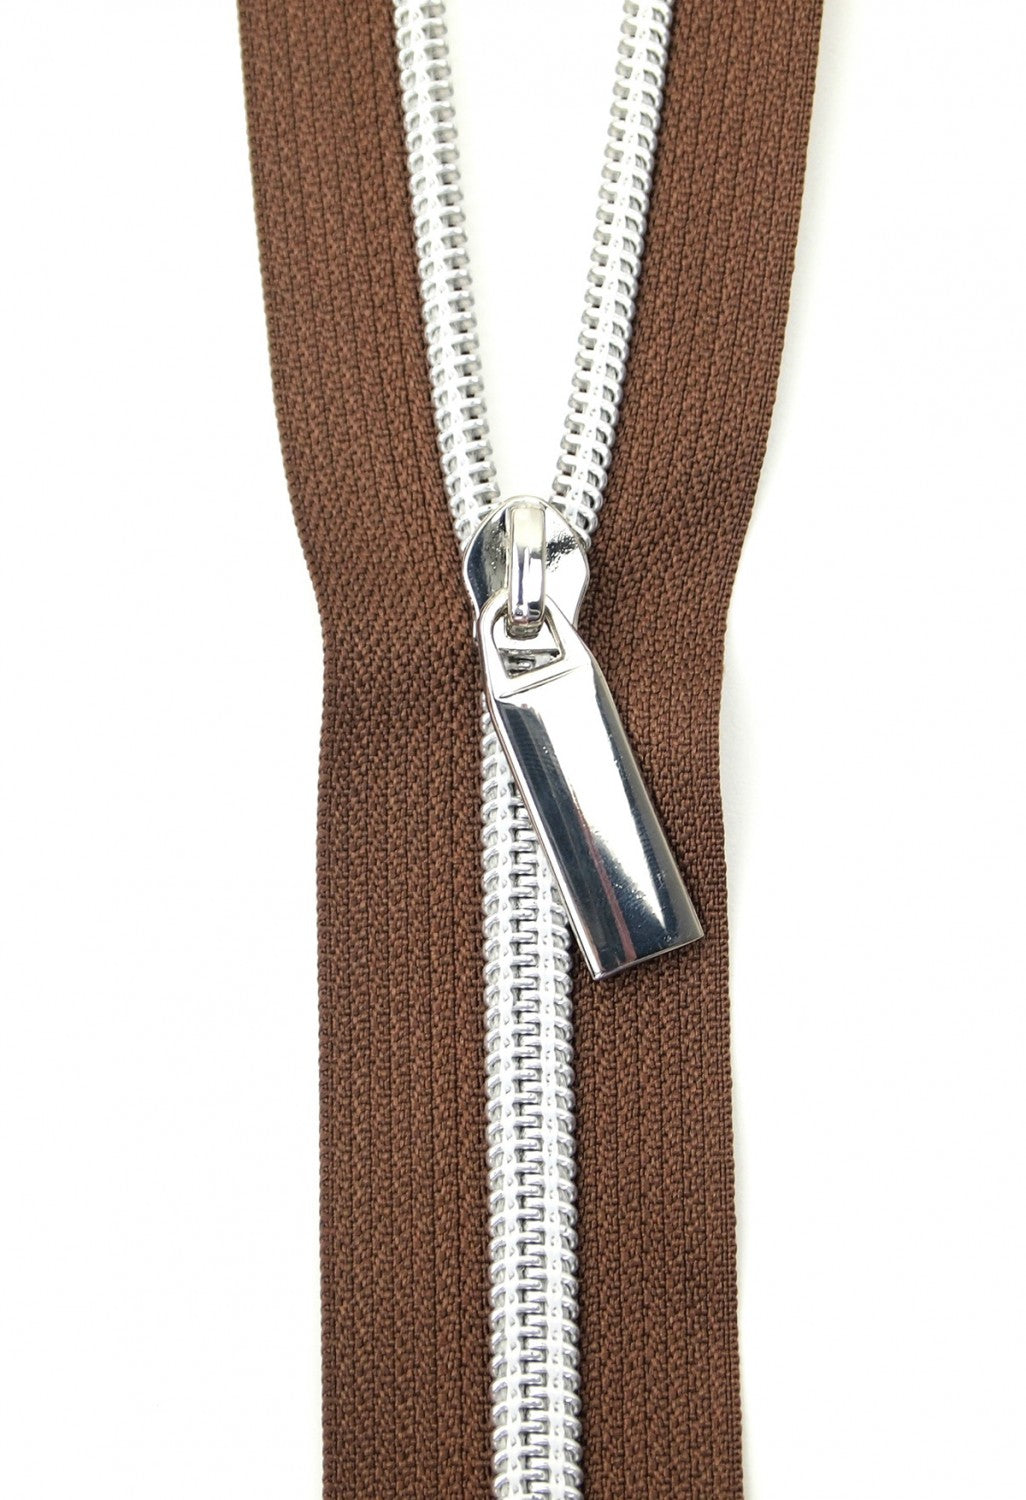 Zippers by the Yard - Brown Tape with Nickel Teeth